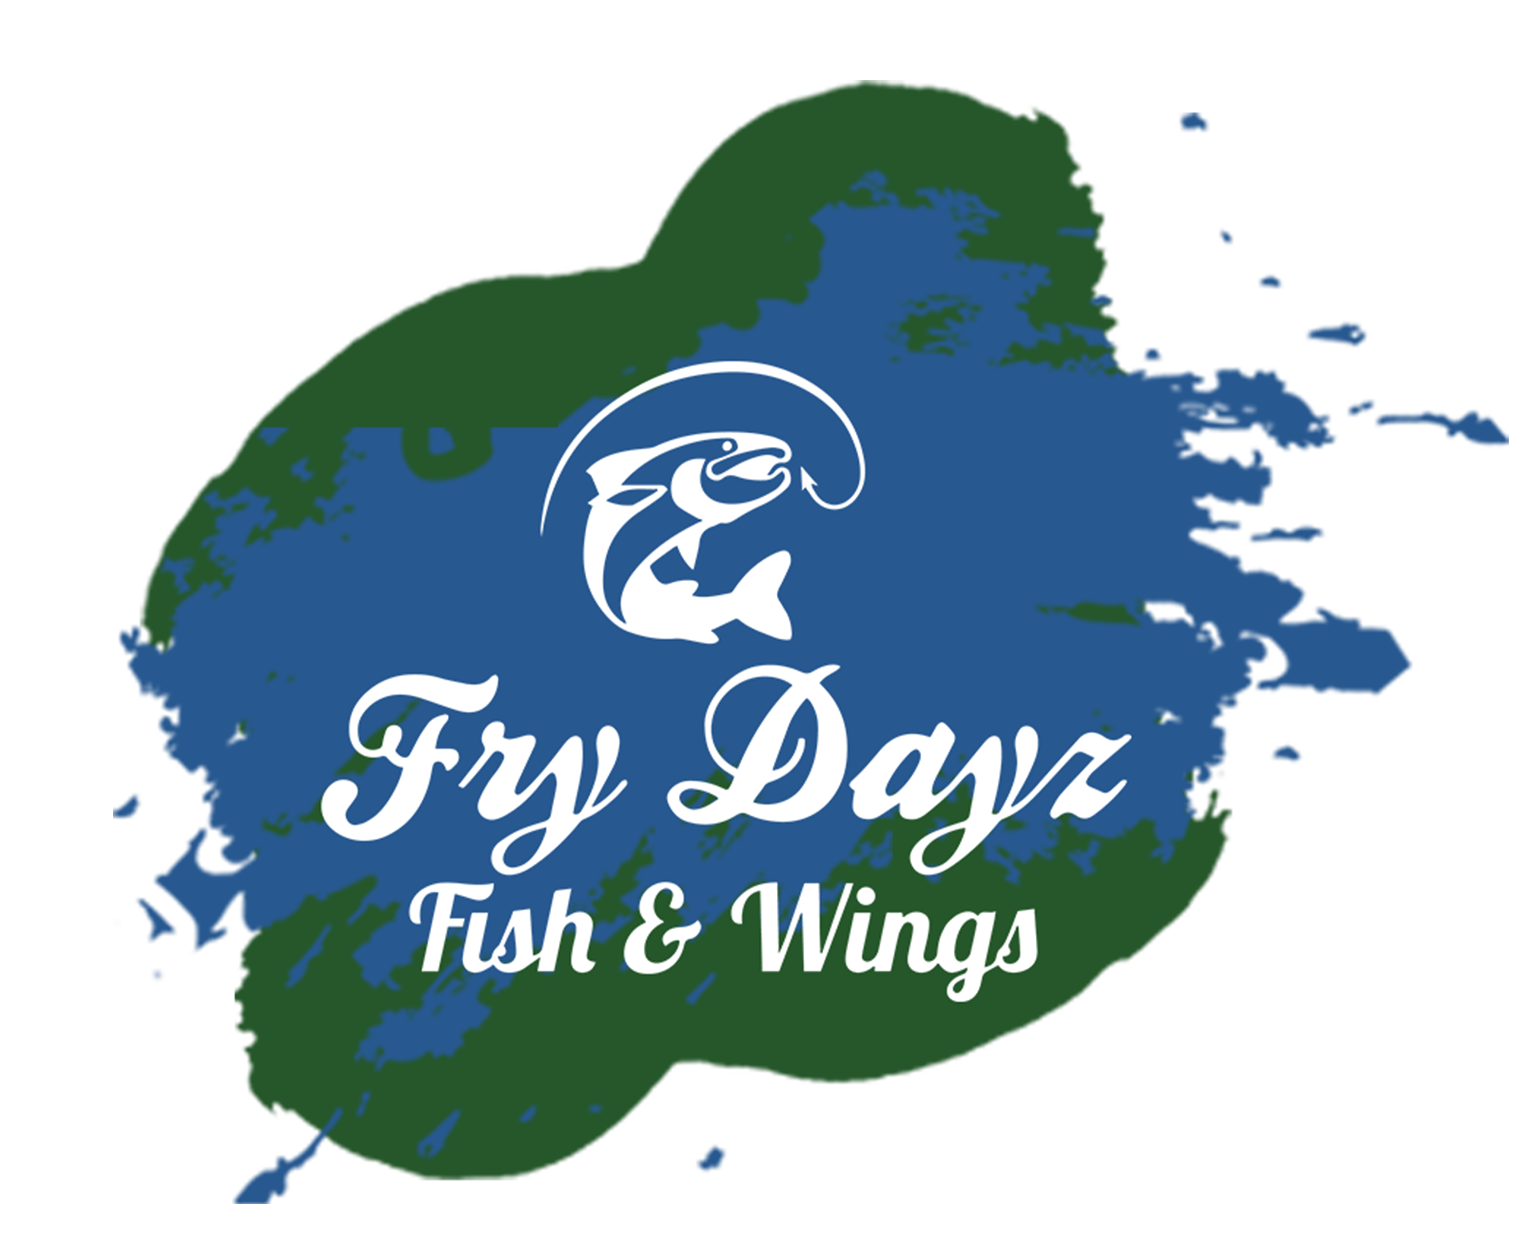 Fry Dayz Fish & Wings